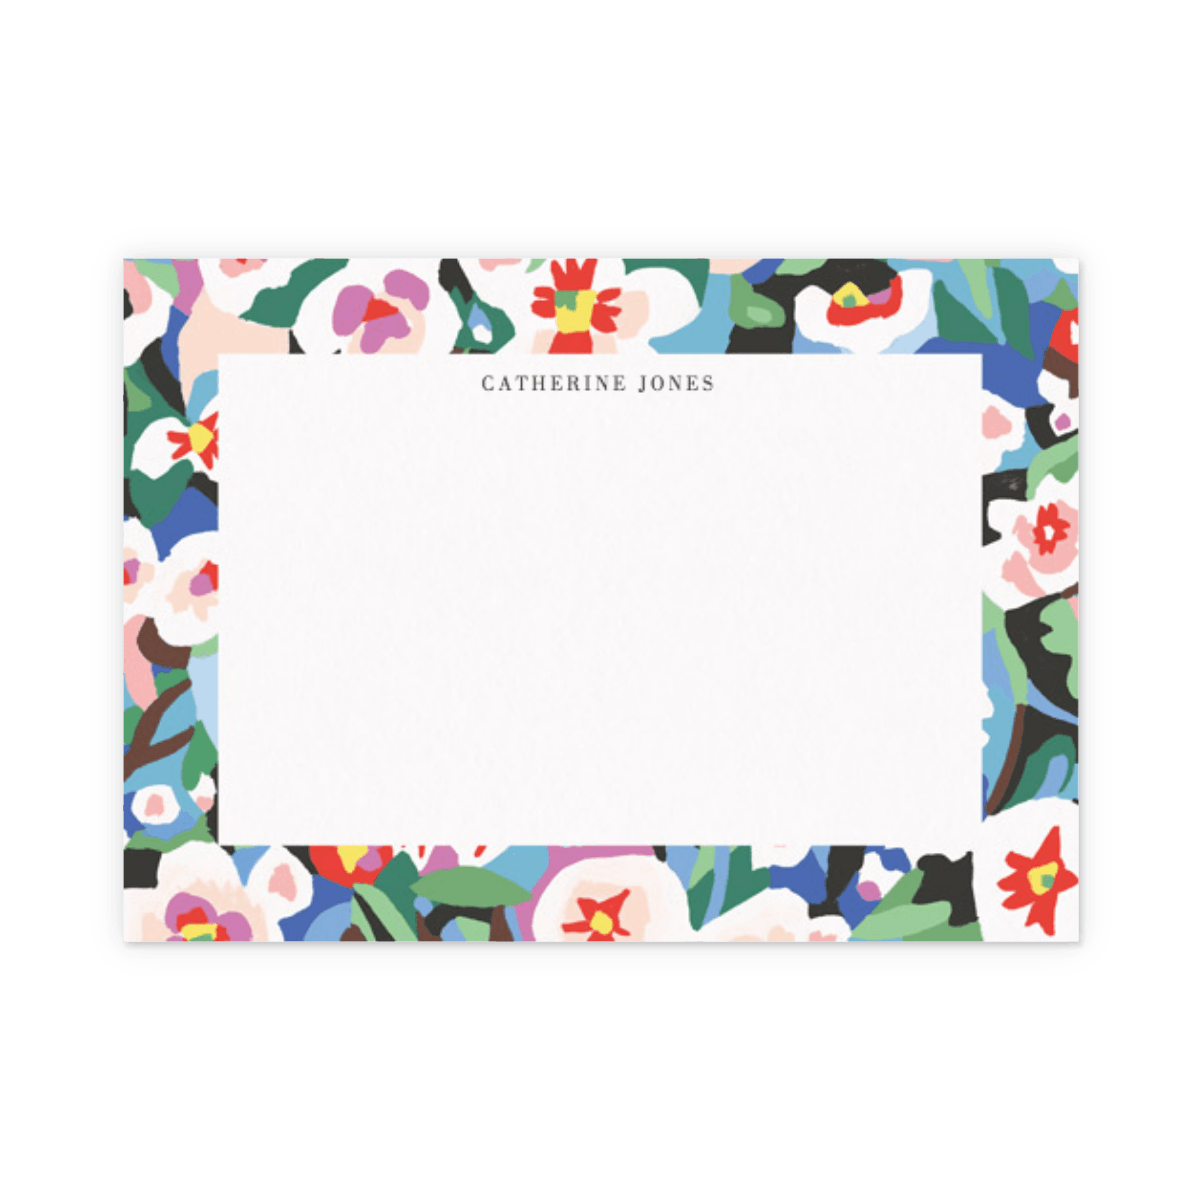 Https%3a%2f%2fwww.papier.com%2fproduct image%2f27893%2f10%2fabstract flowers 6960 front 1508156677.png?ixlib=rb 1.1